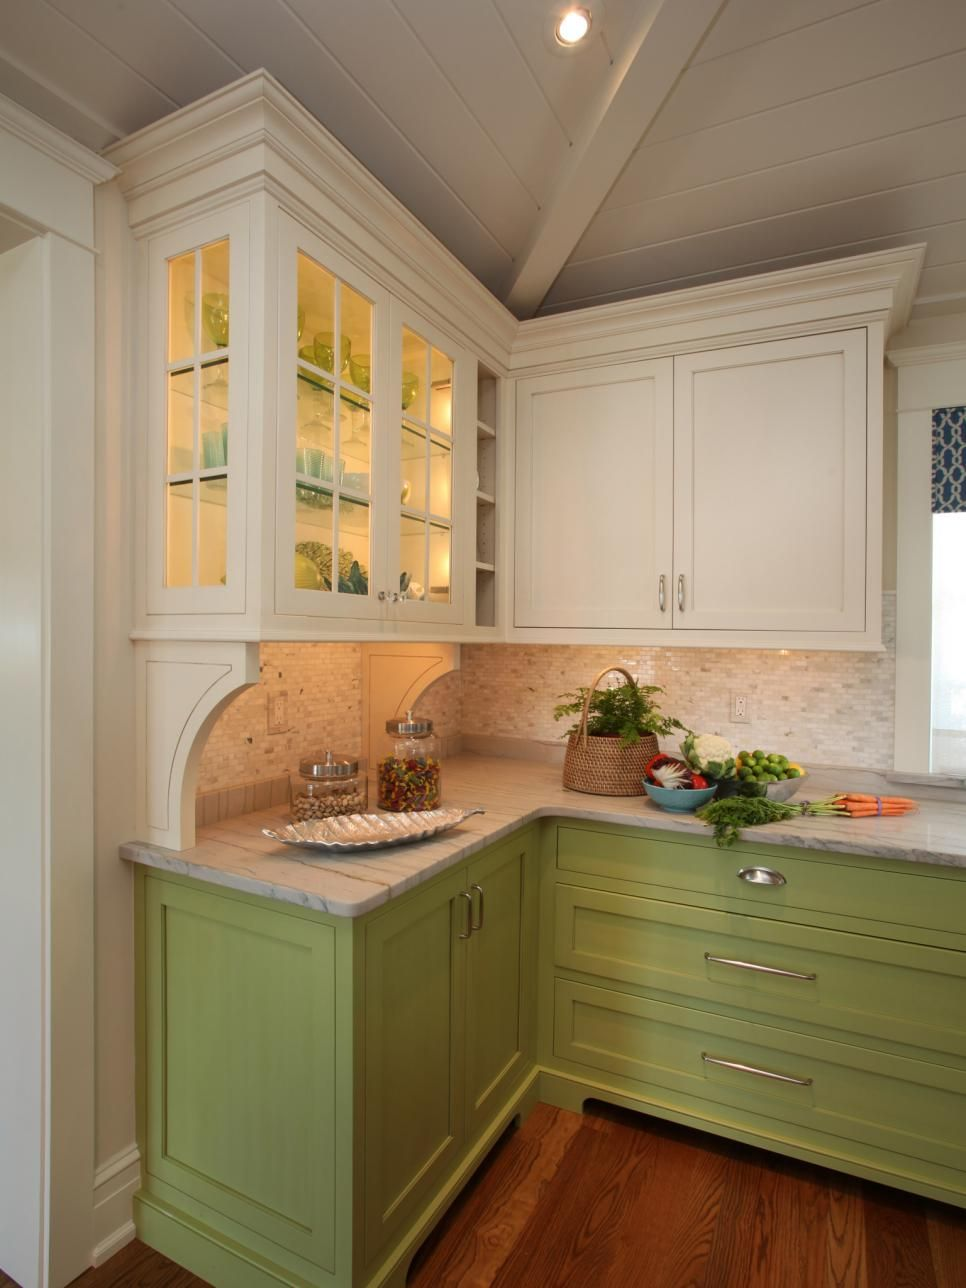 this light and airy kitchen is livened up by a bright pop of color